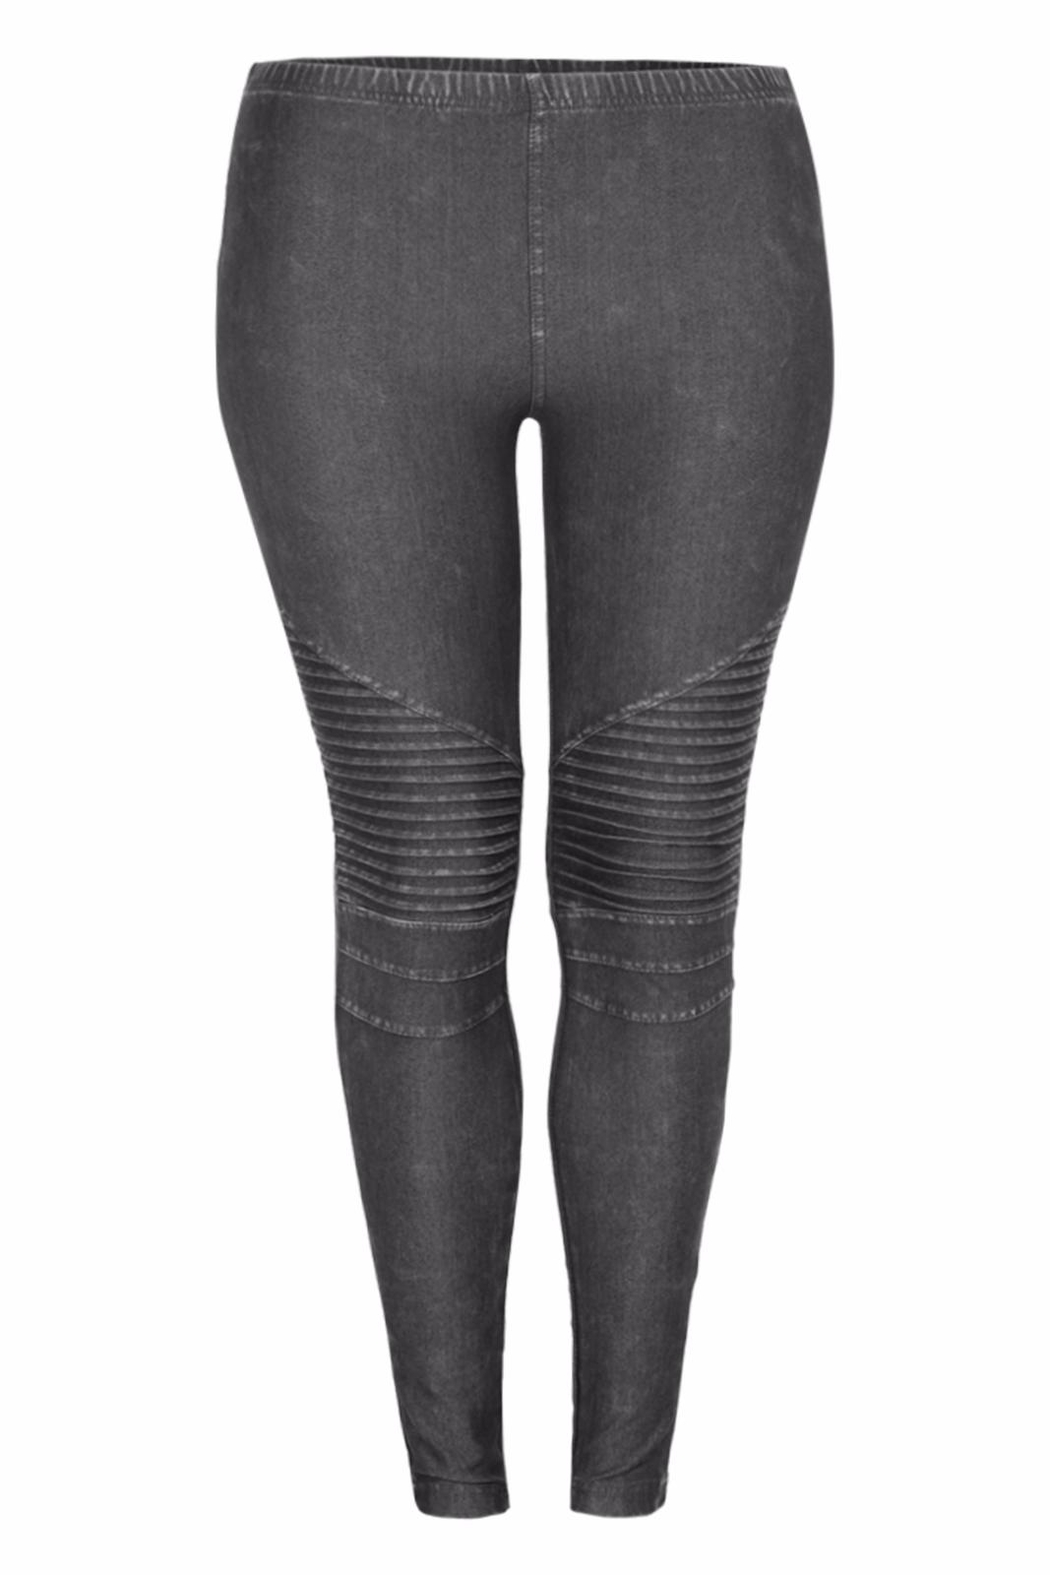 1adf67ee2f1828 Dex Plus Moto Leggings from Canada by LaBelle — Shoptiques